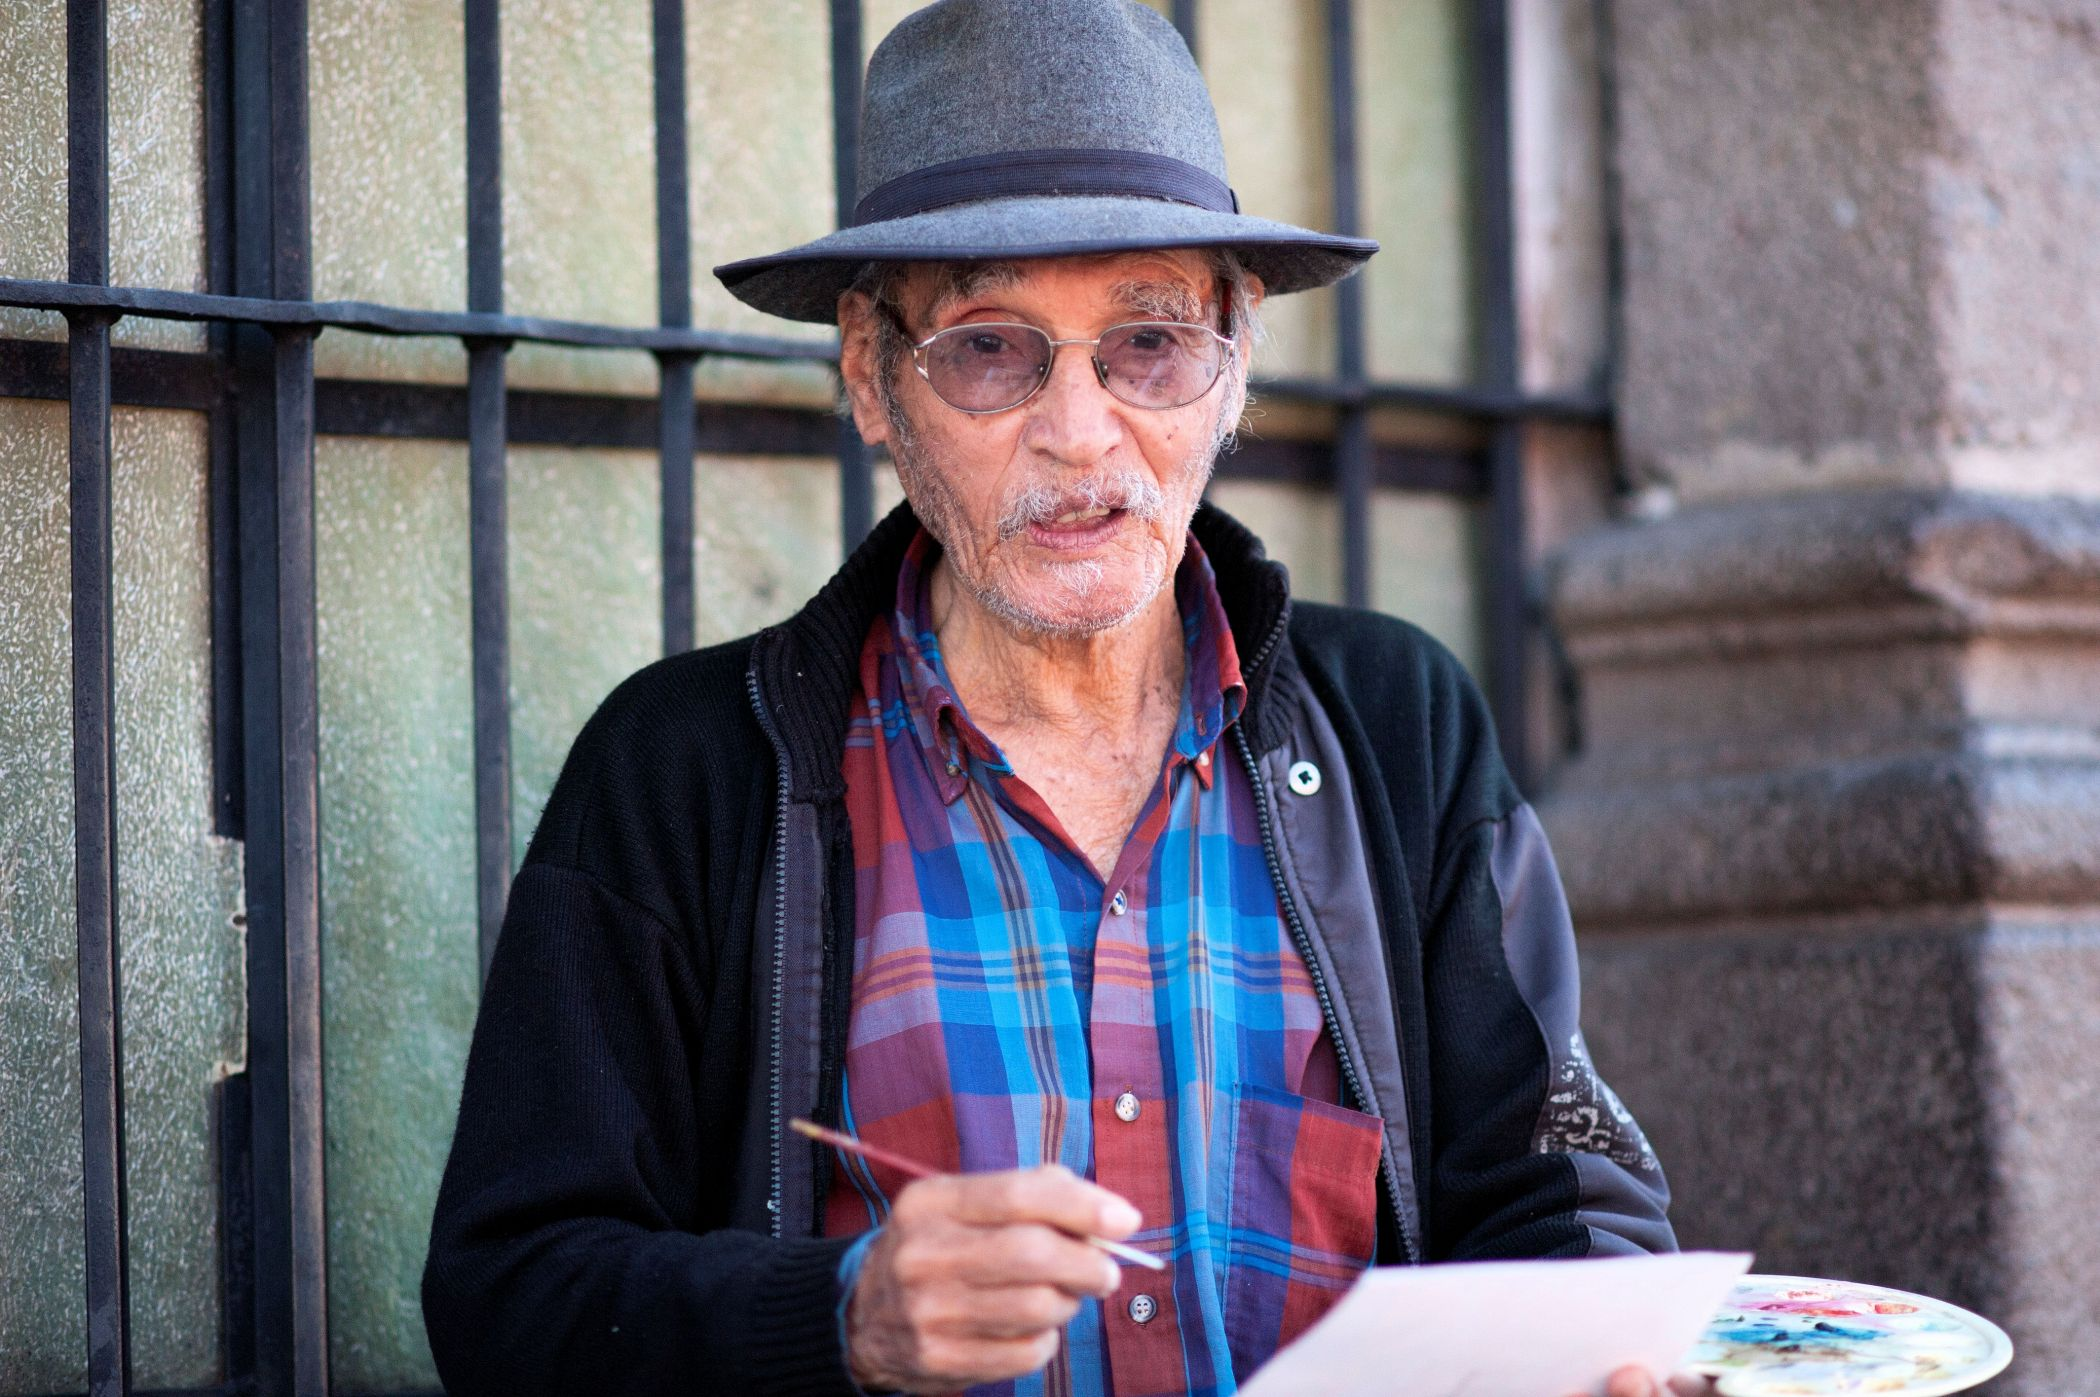 Faces of Guatemala: A painter in the street